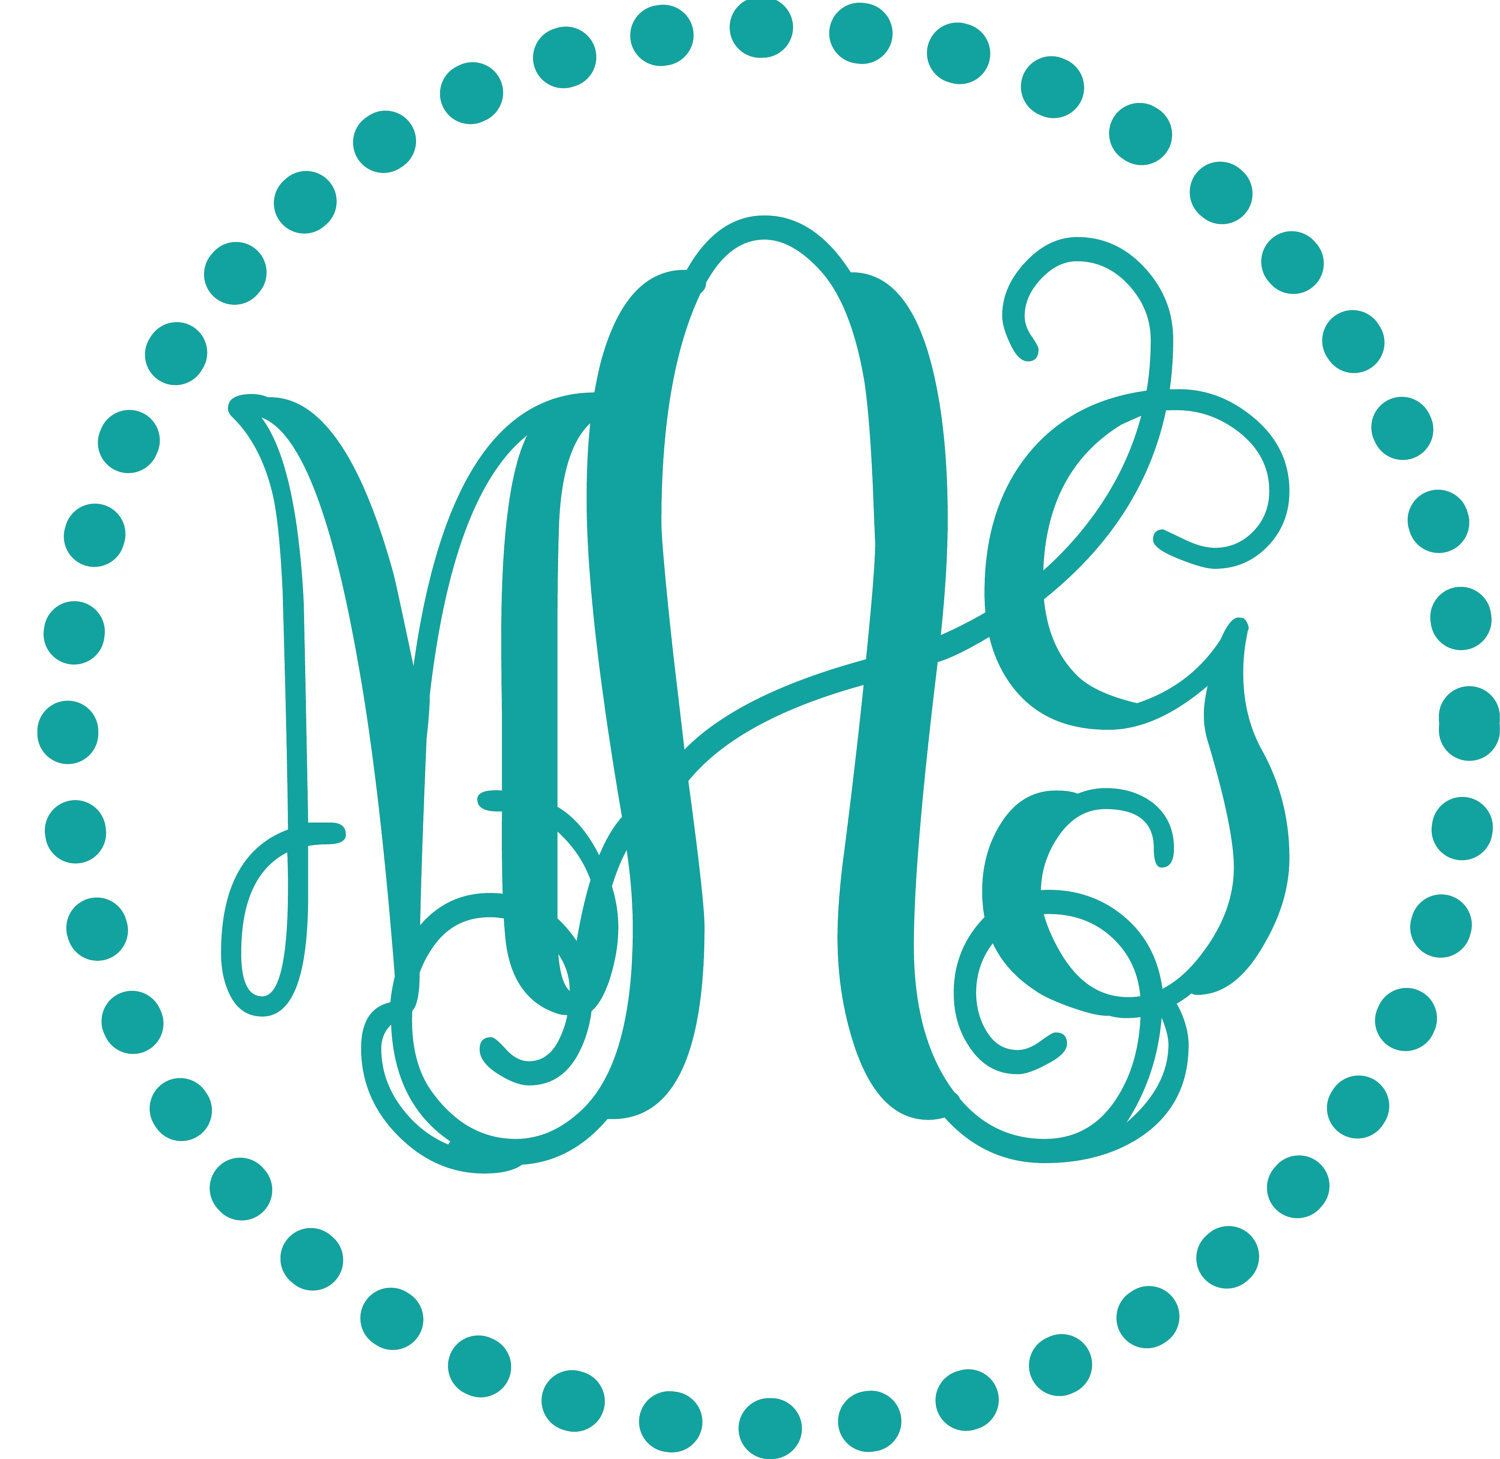 Free monogram fonts for vinyl image results for Free monogram template